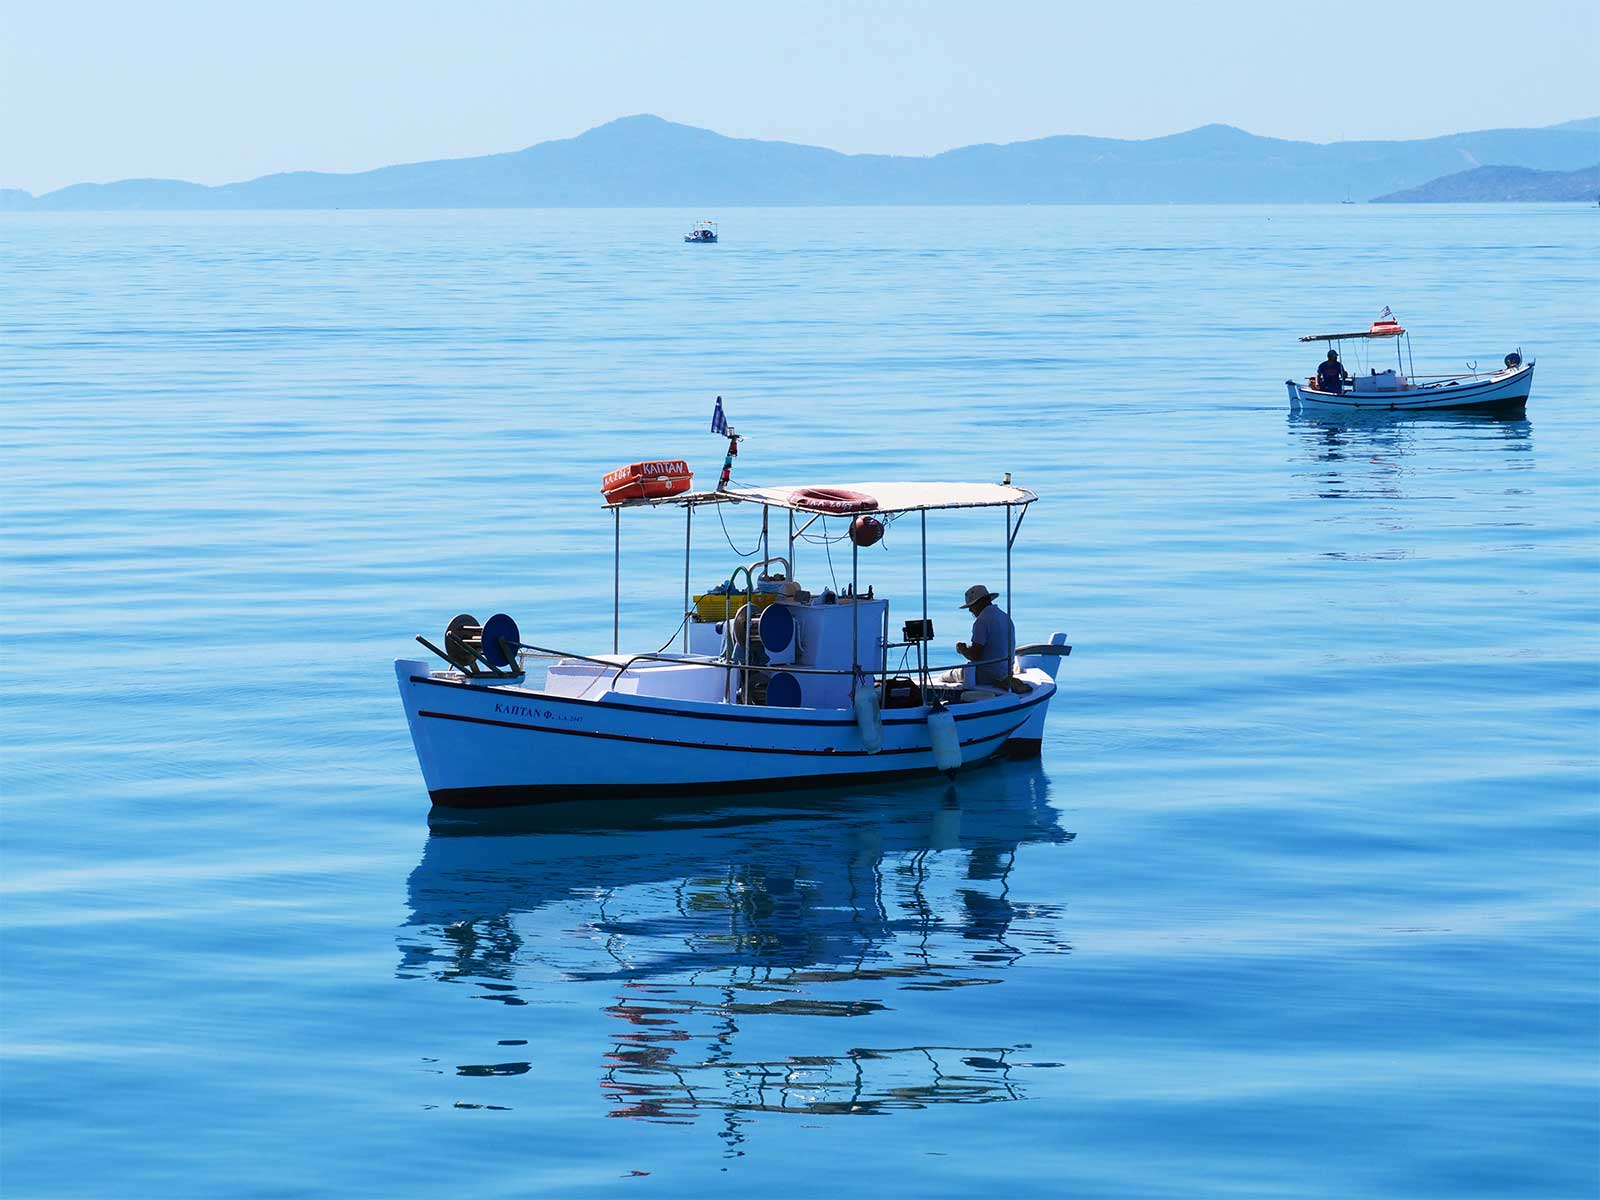 Greek Island of Aegina | Saronic Gulf | Greece | Photo Steven Andrew Martin 2019